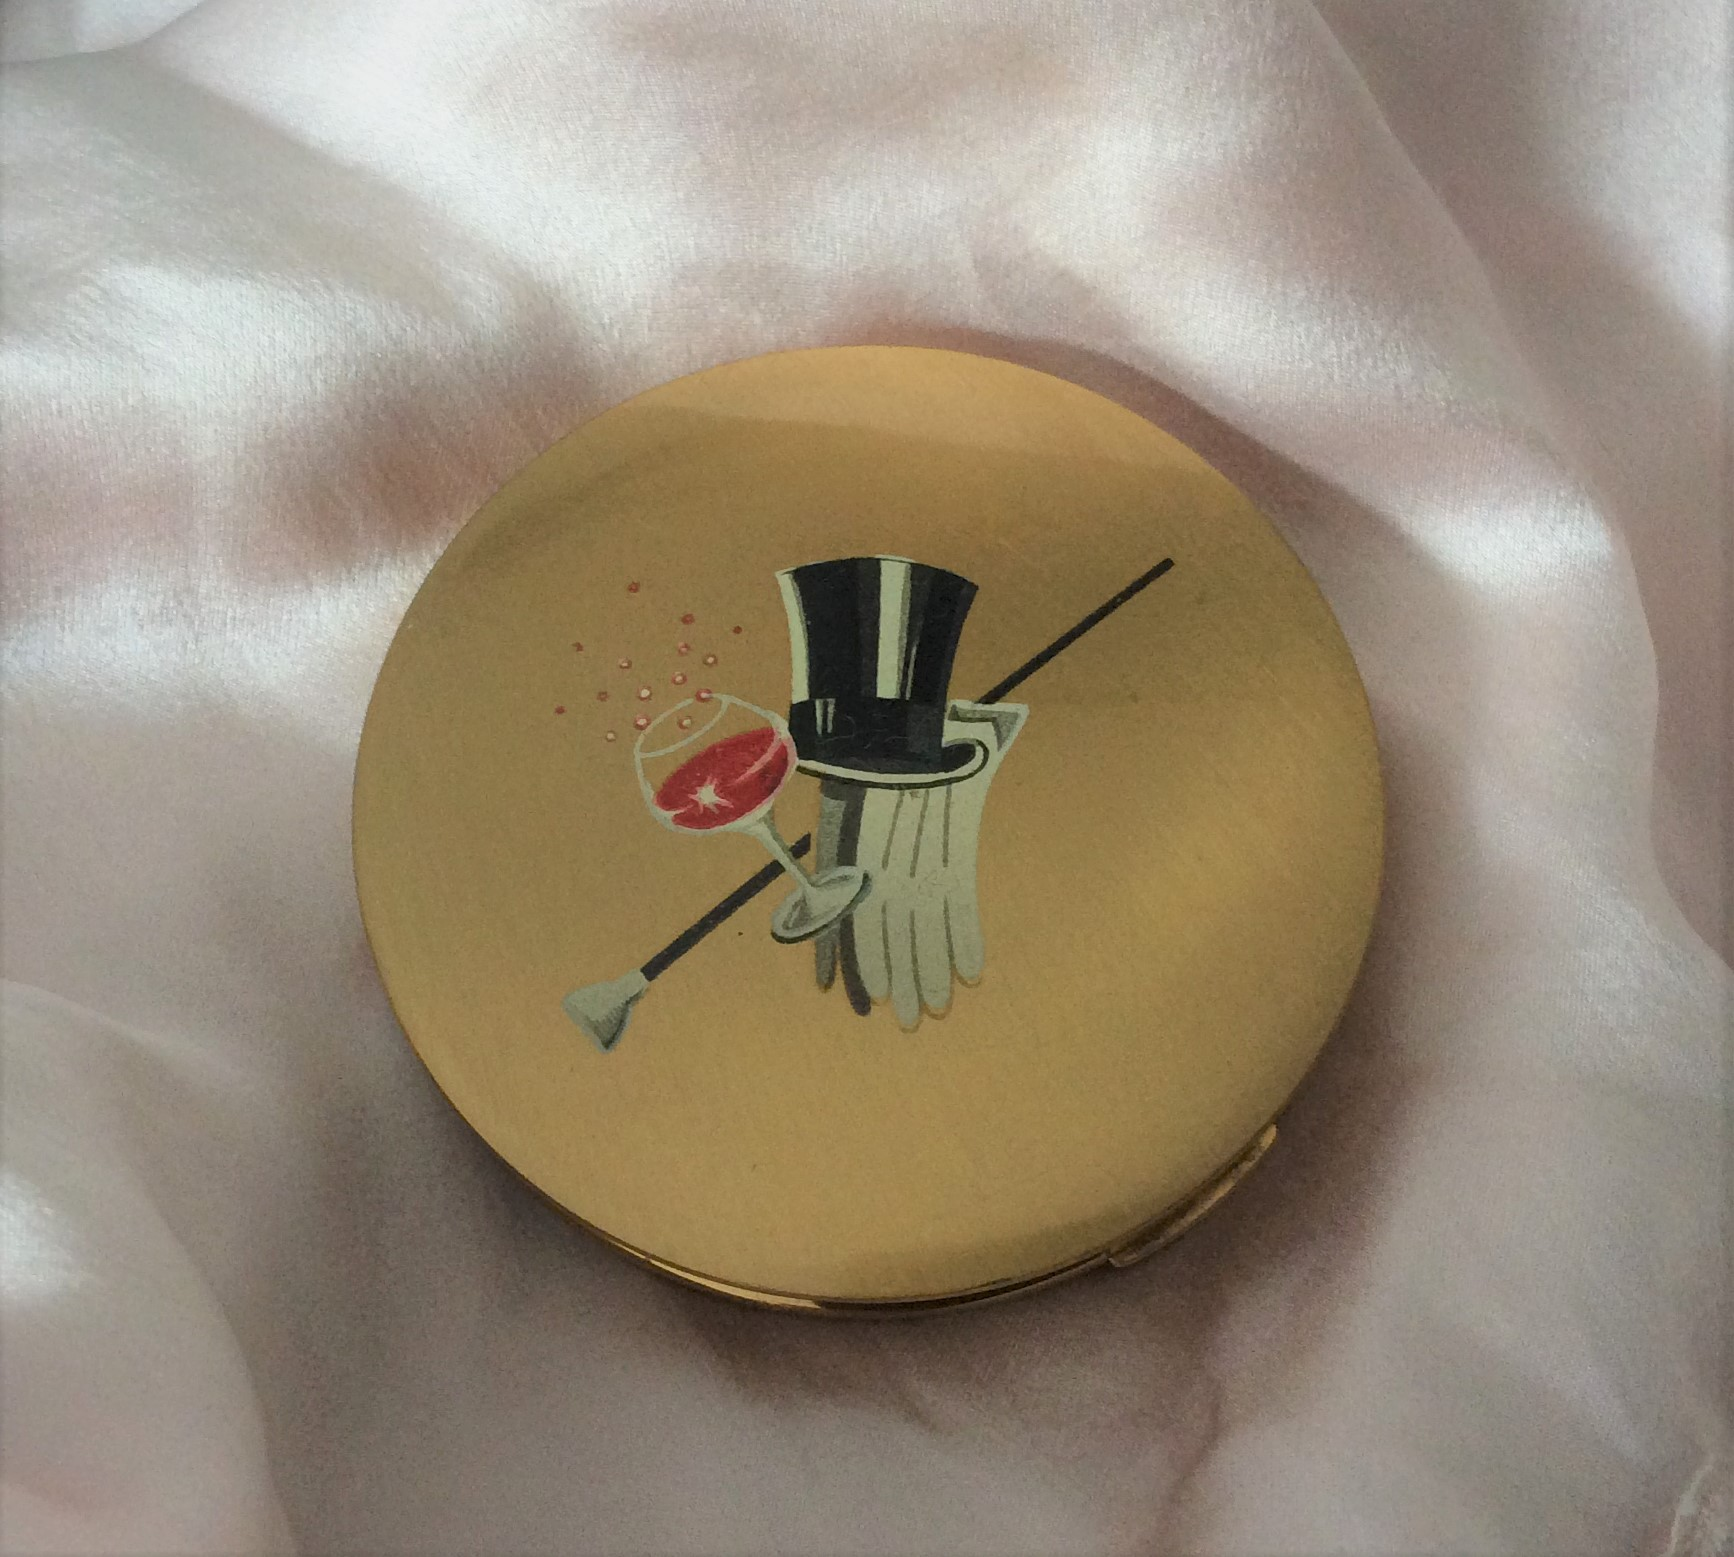 Vintage 50s Stratton Tophat, Cocktail, Gloves and Cane Novelty Powder Compact